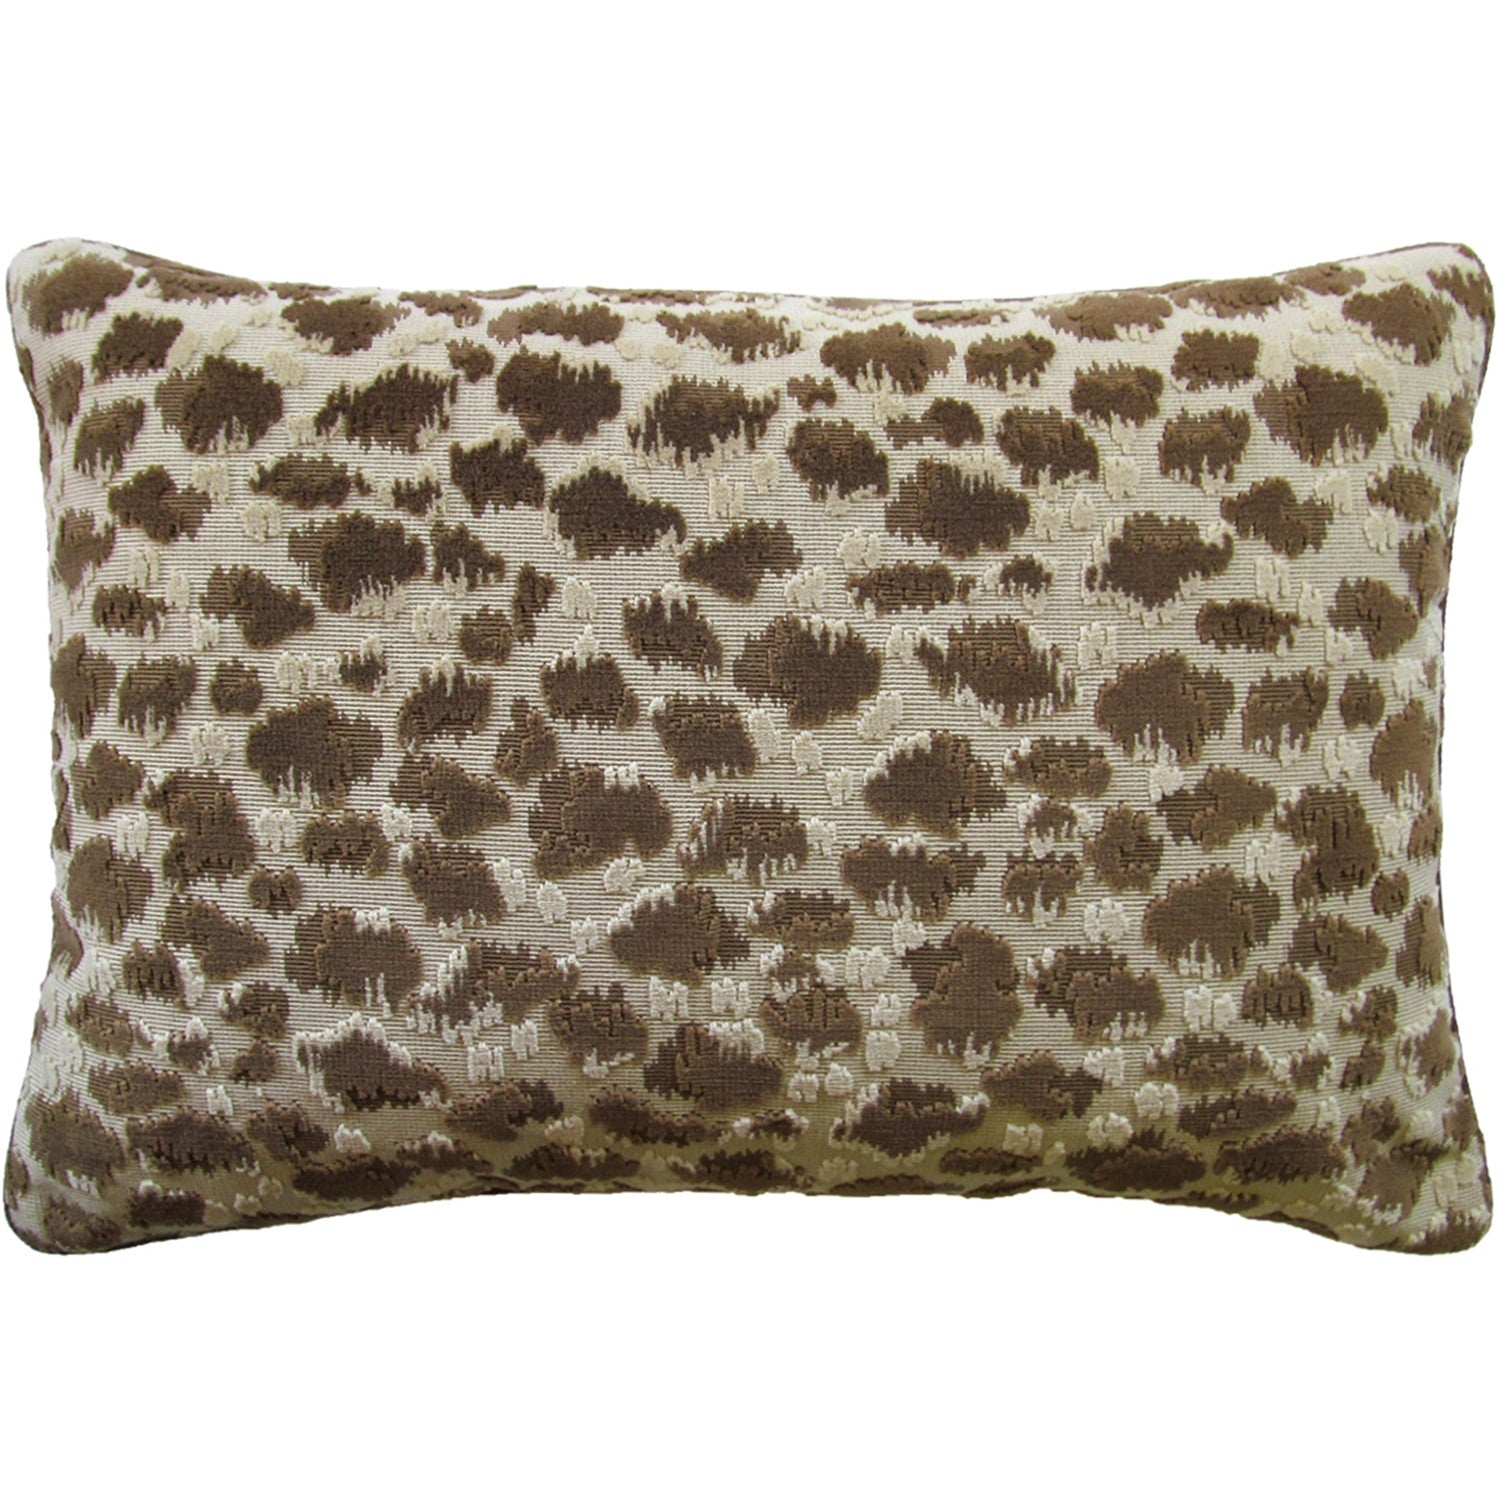 Ryan Studio Zambezi Pillow in Chickory